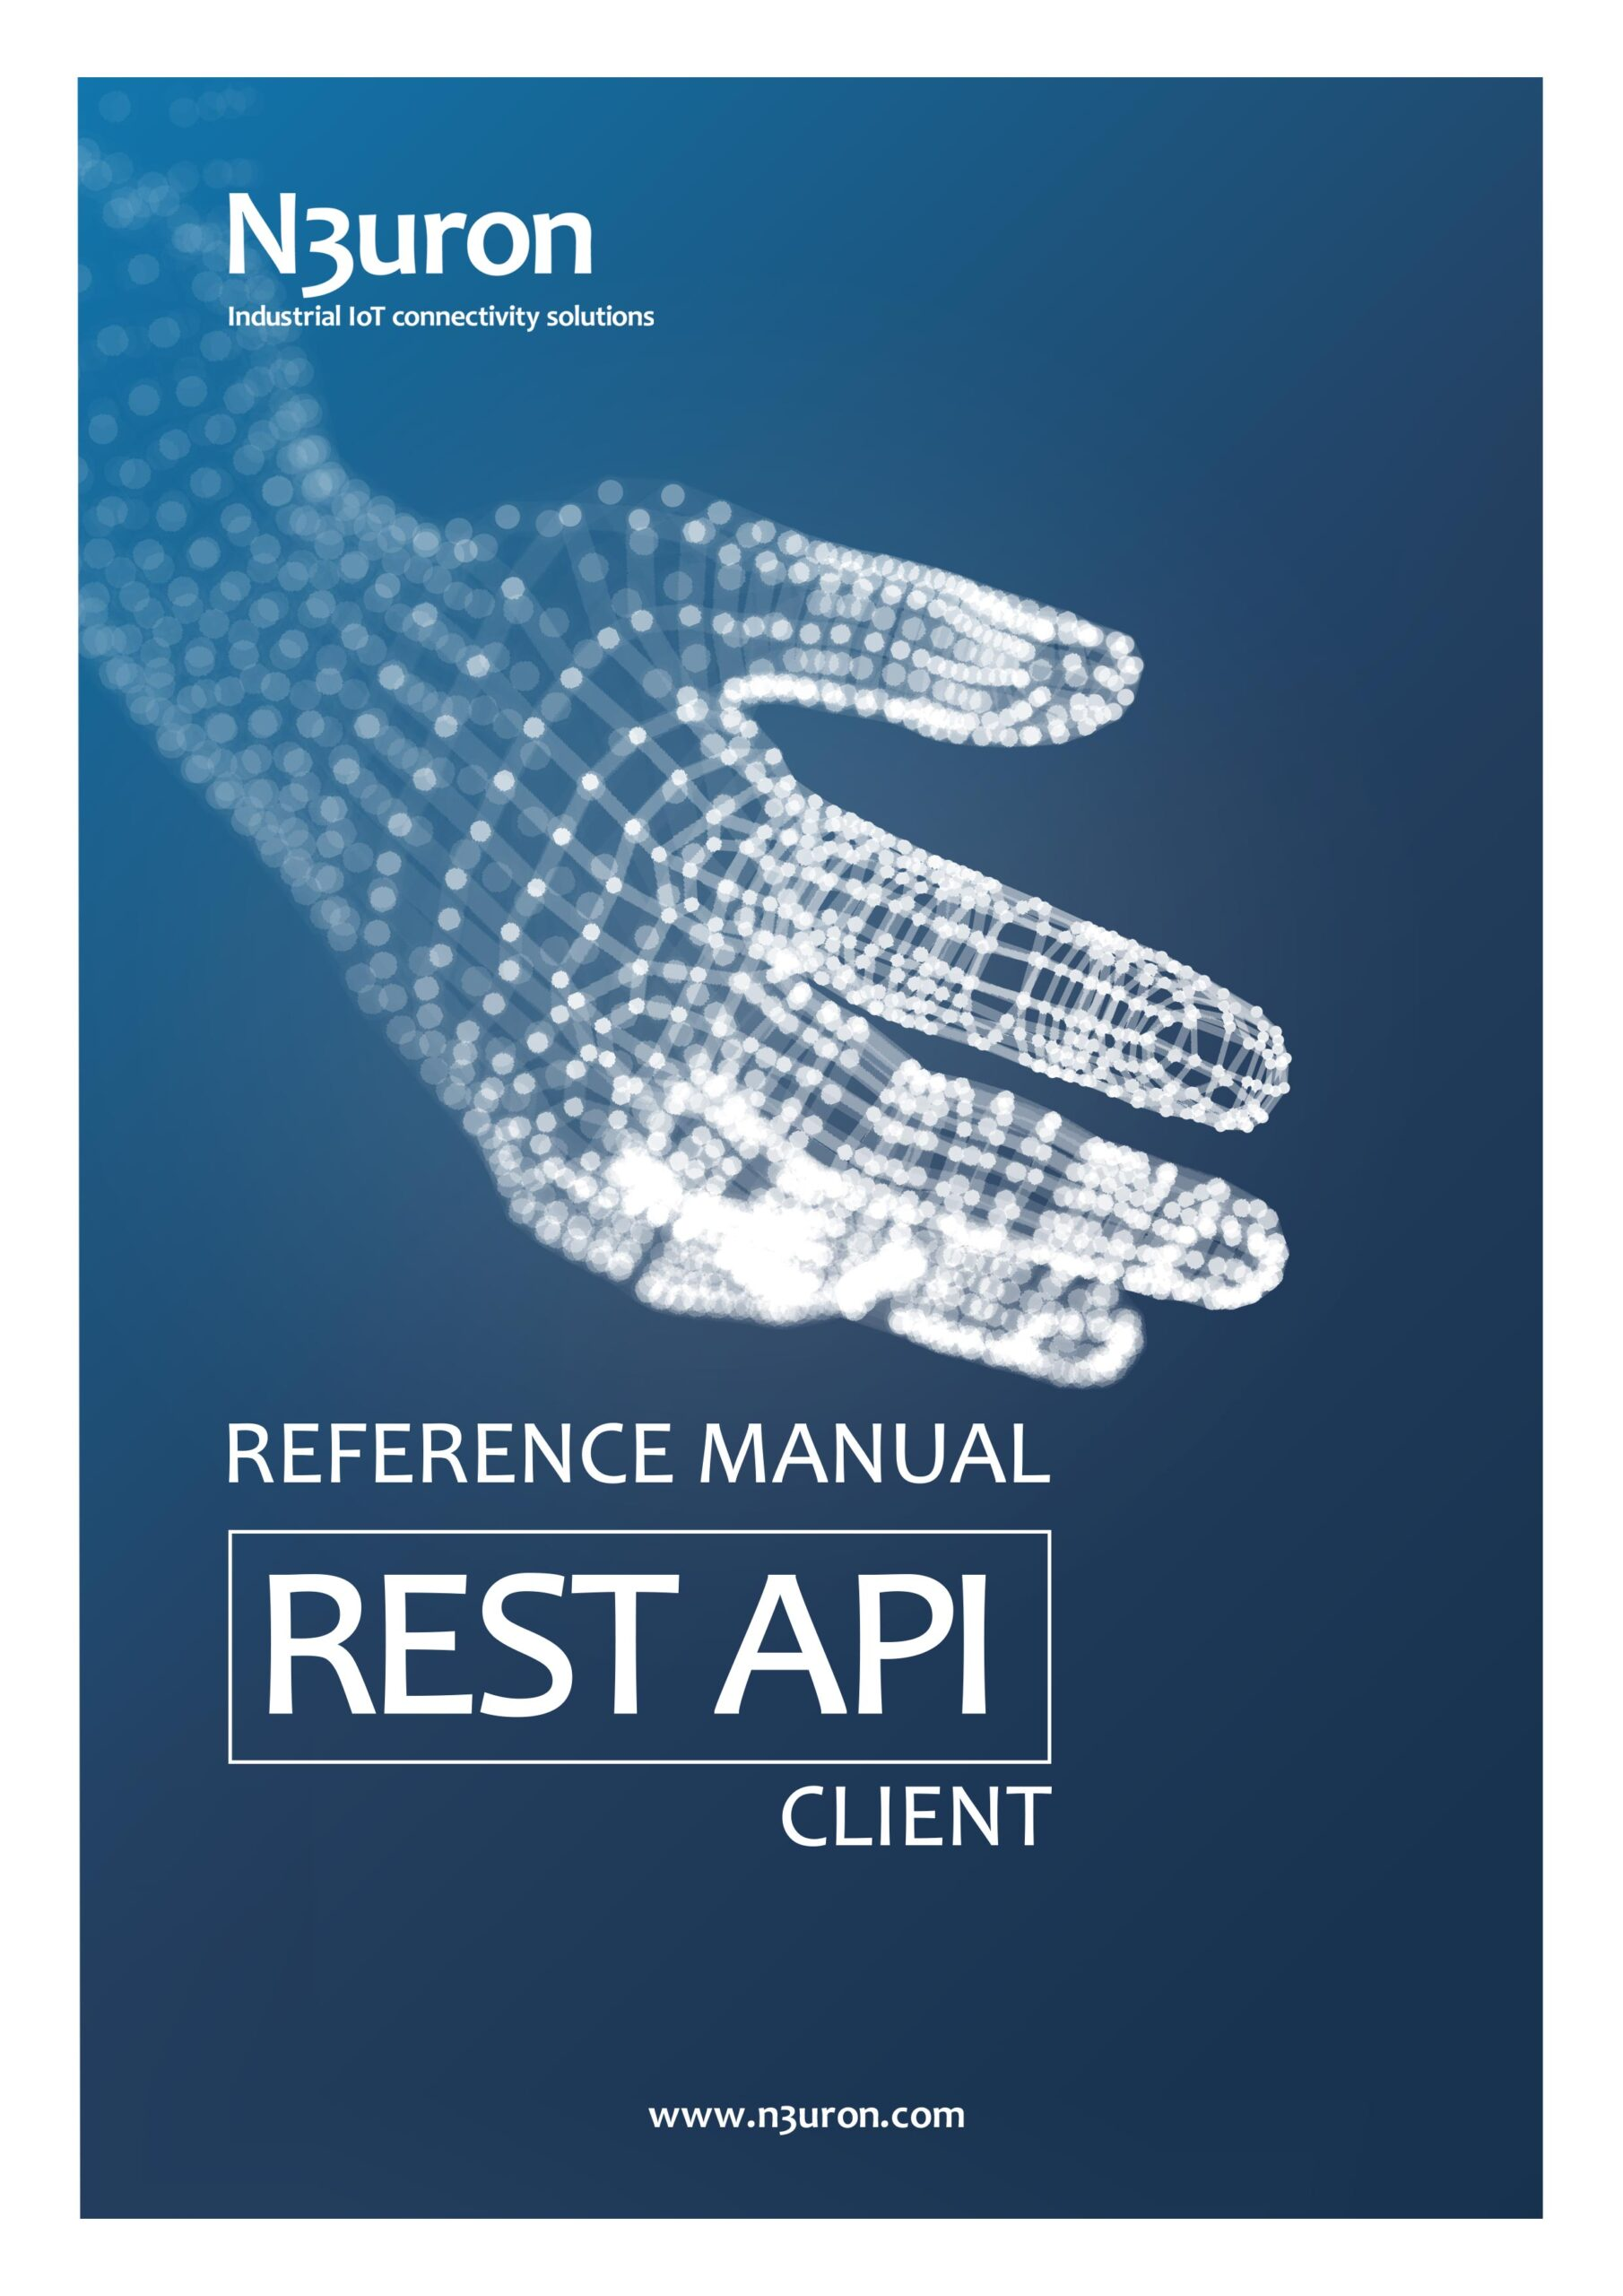 N3uron Industrial IoT communication platform Rest Api Client Manual Cover.